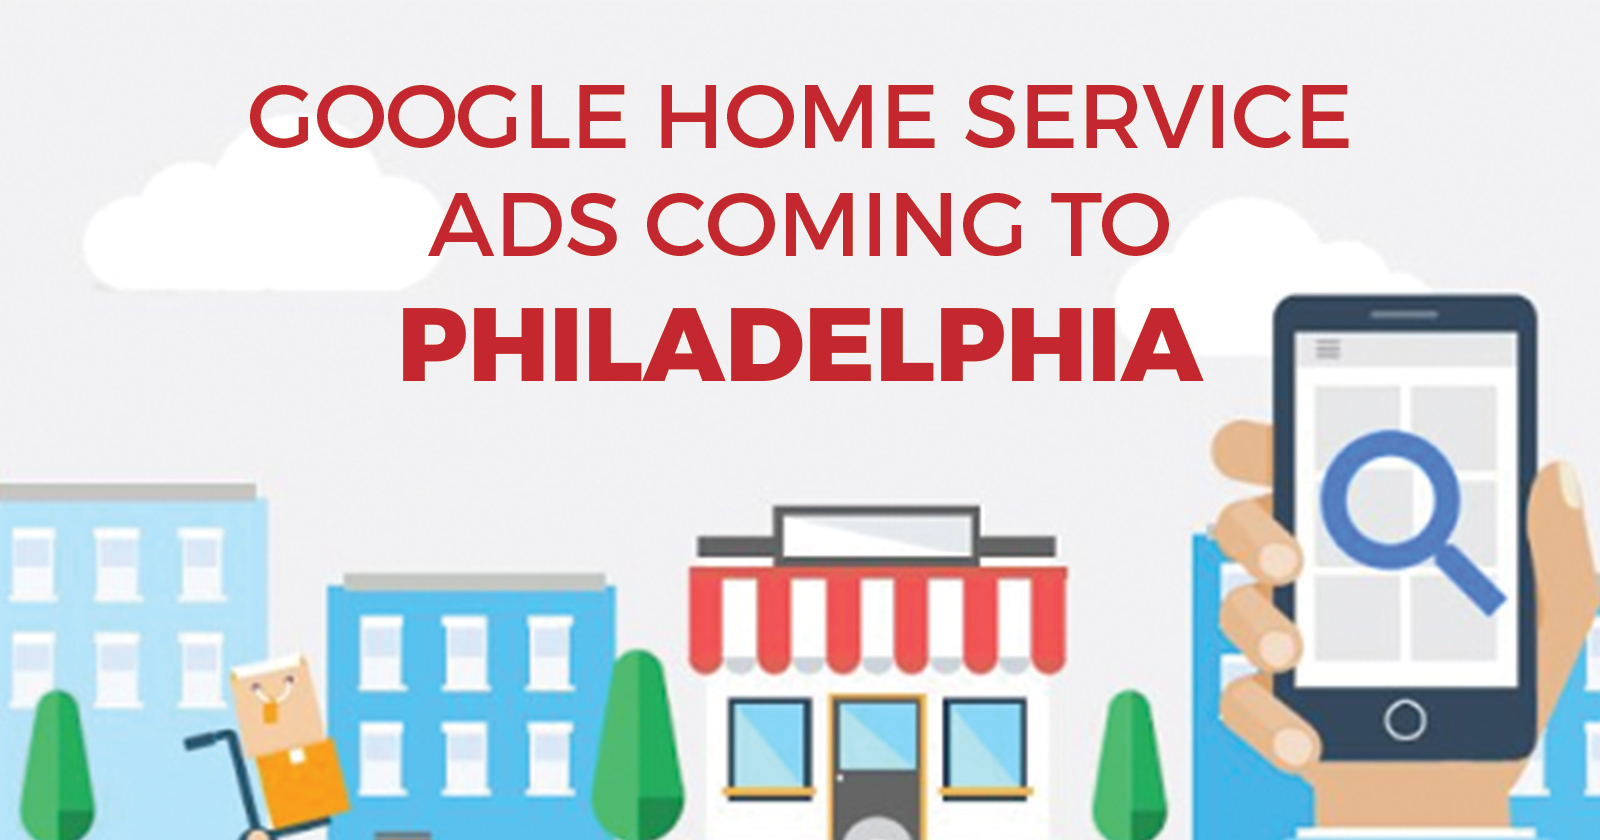 Google Home Service Ads to Launch Soon in Chicago Google Home Service Ads Expanding to East Coast. Google Home Design. Home Design Ideas